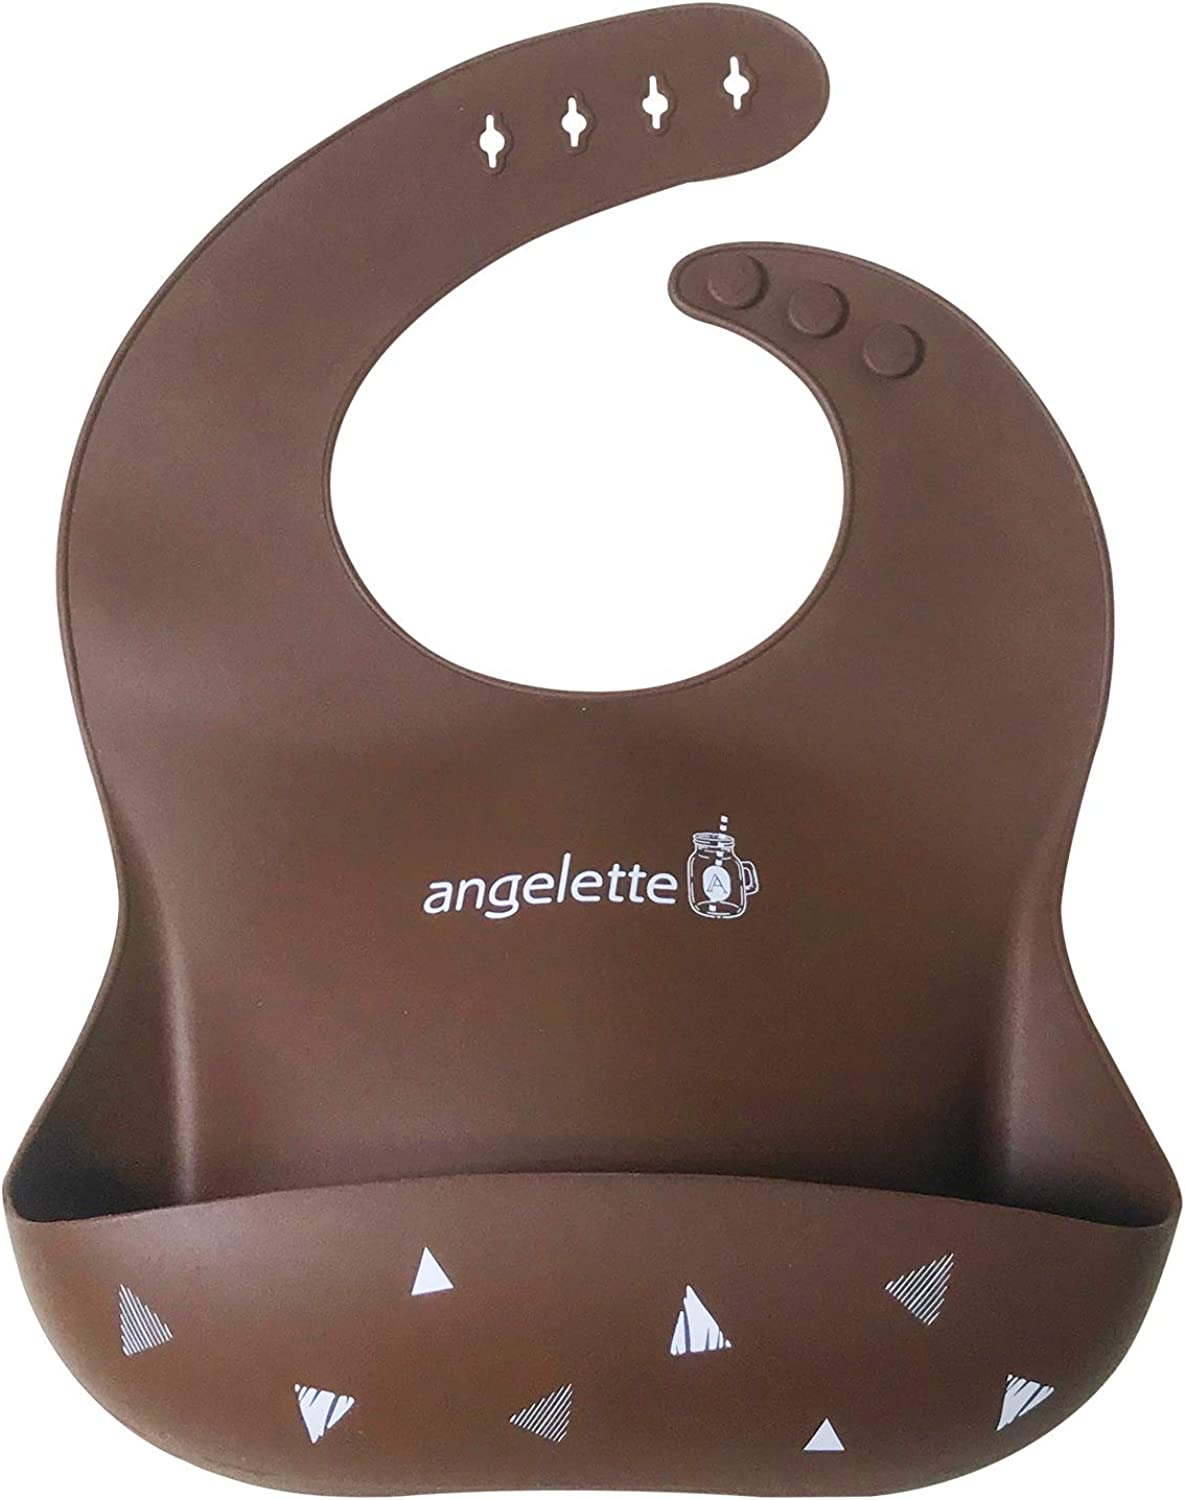 angelette Baby Silicone Bib with Crumb Catcher Pocket coming with giftbox - Feeding Bib for Girls or Boys